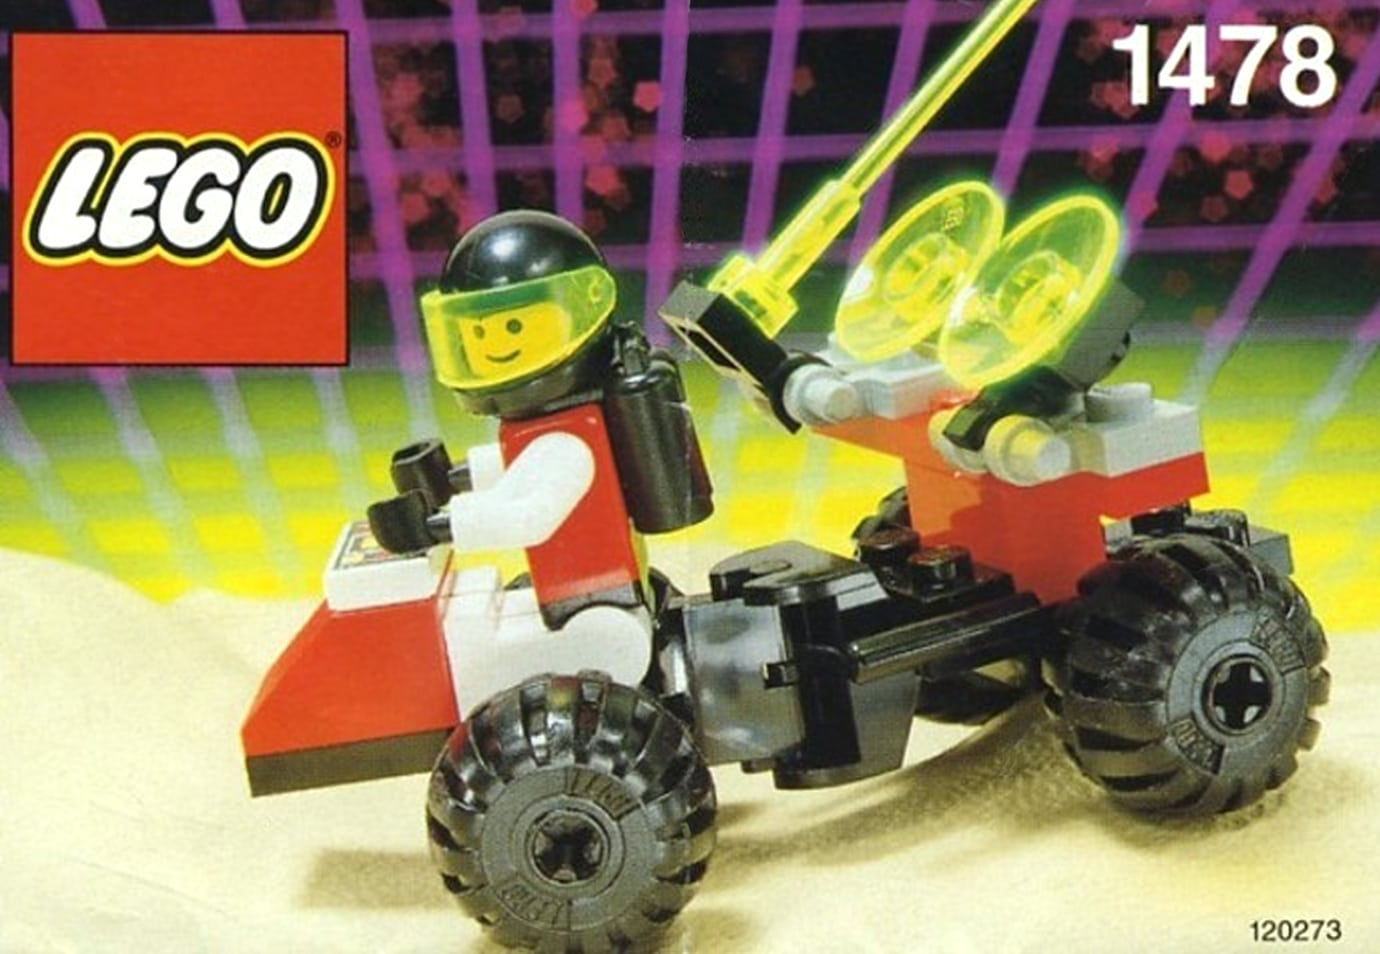 LEGO M Tron 1478 Mobile Satellite Up Link